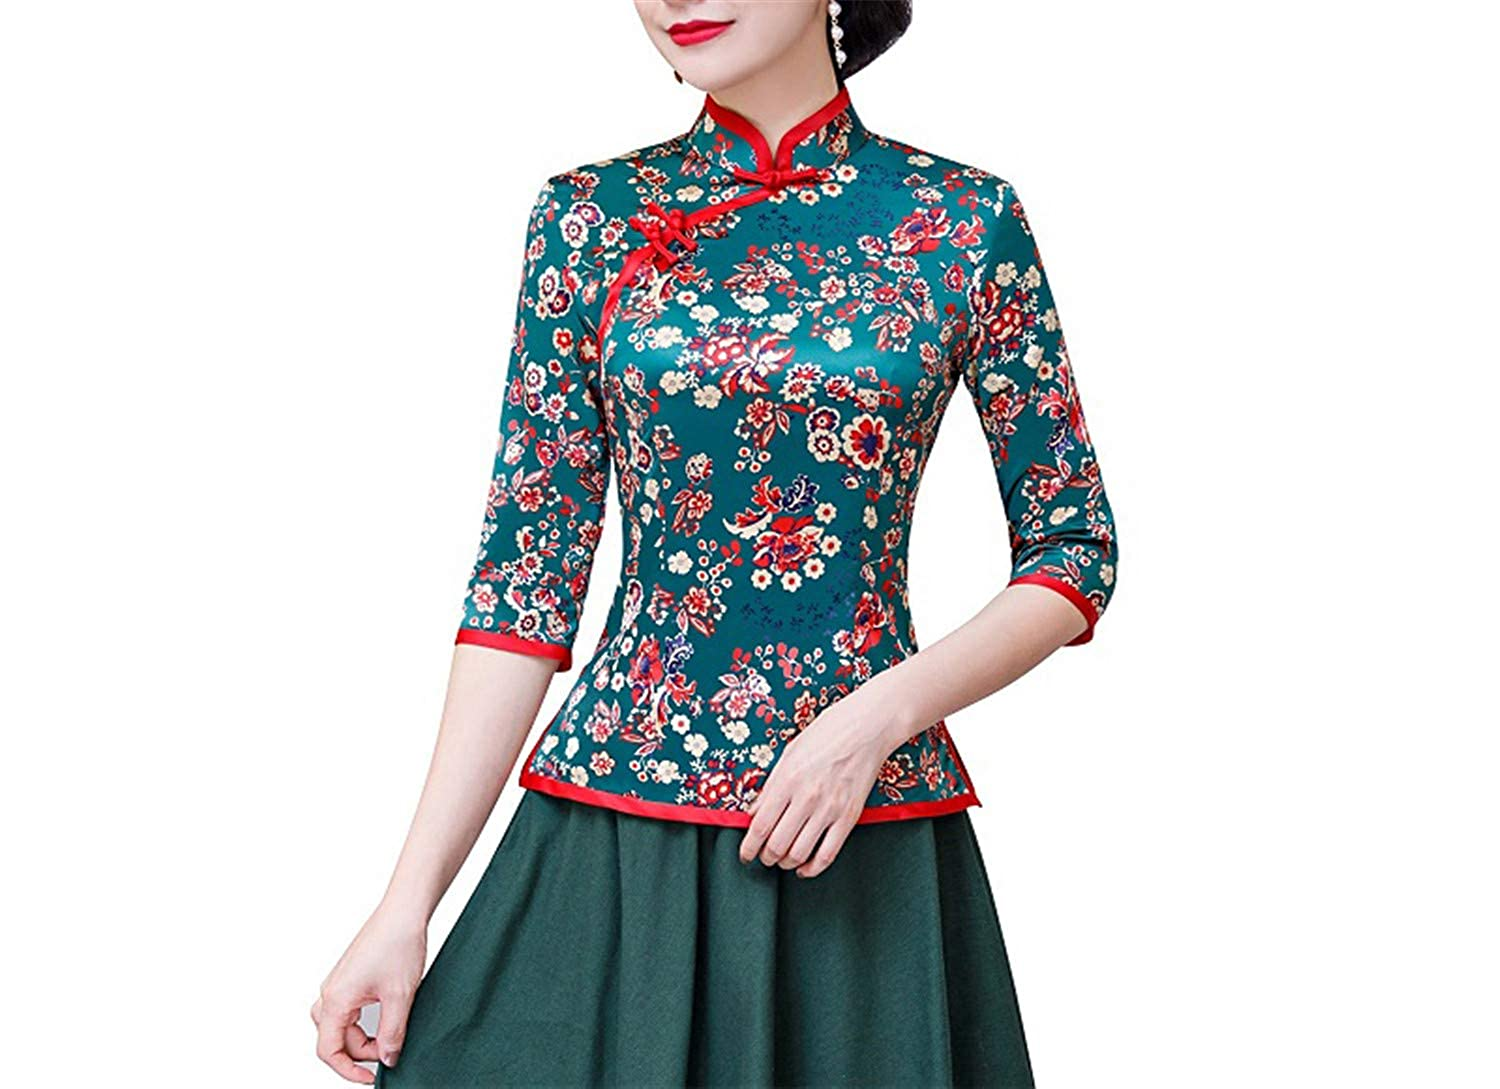 b8679c6994b6d Floral cheongsam shirt qipaotop sleeve chinese traditional top faux silk chinese  blouse for women clothing jpg